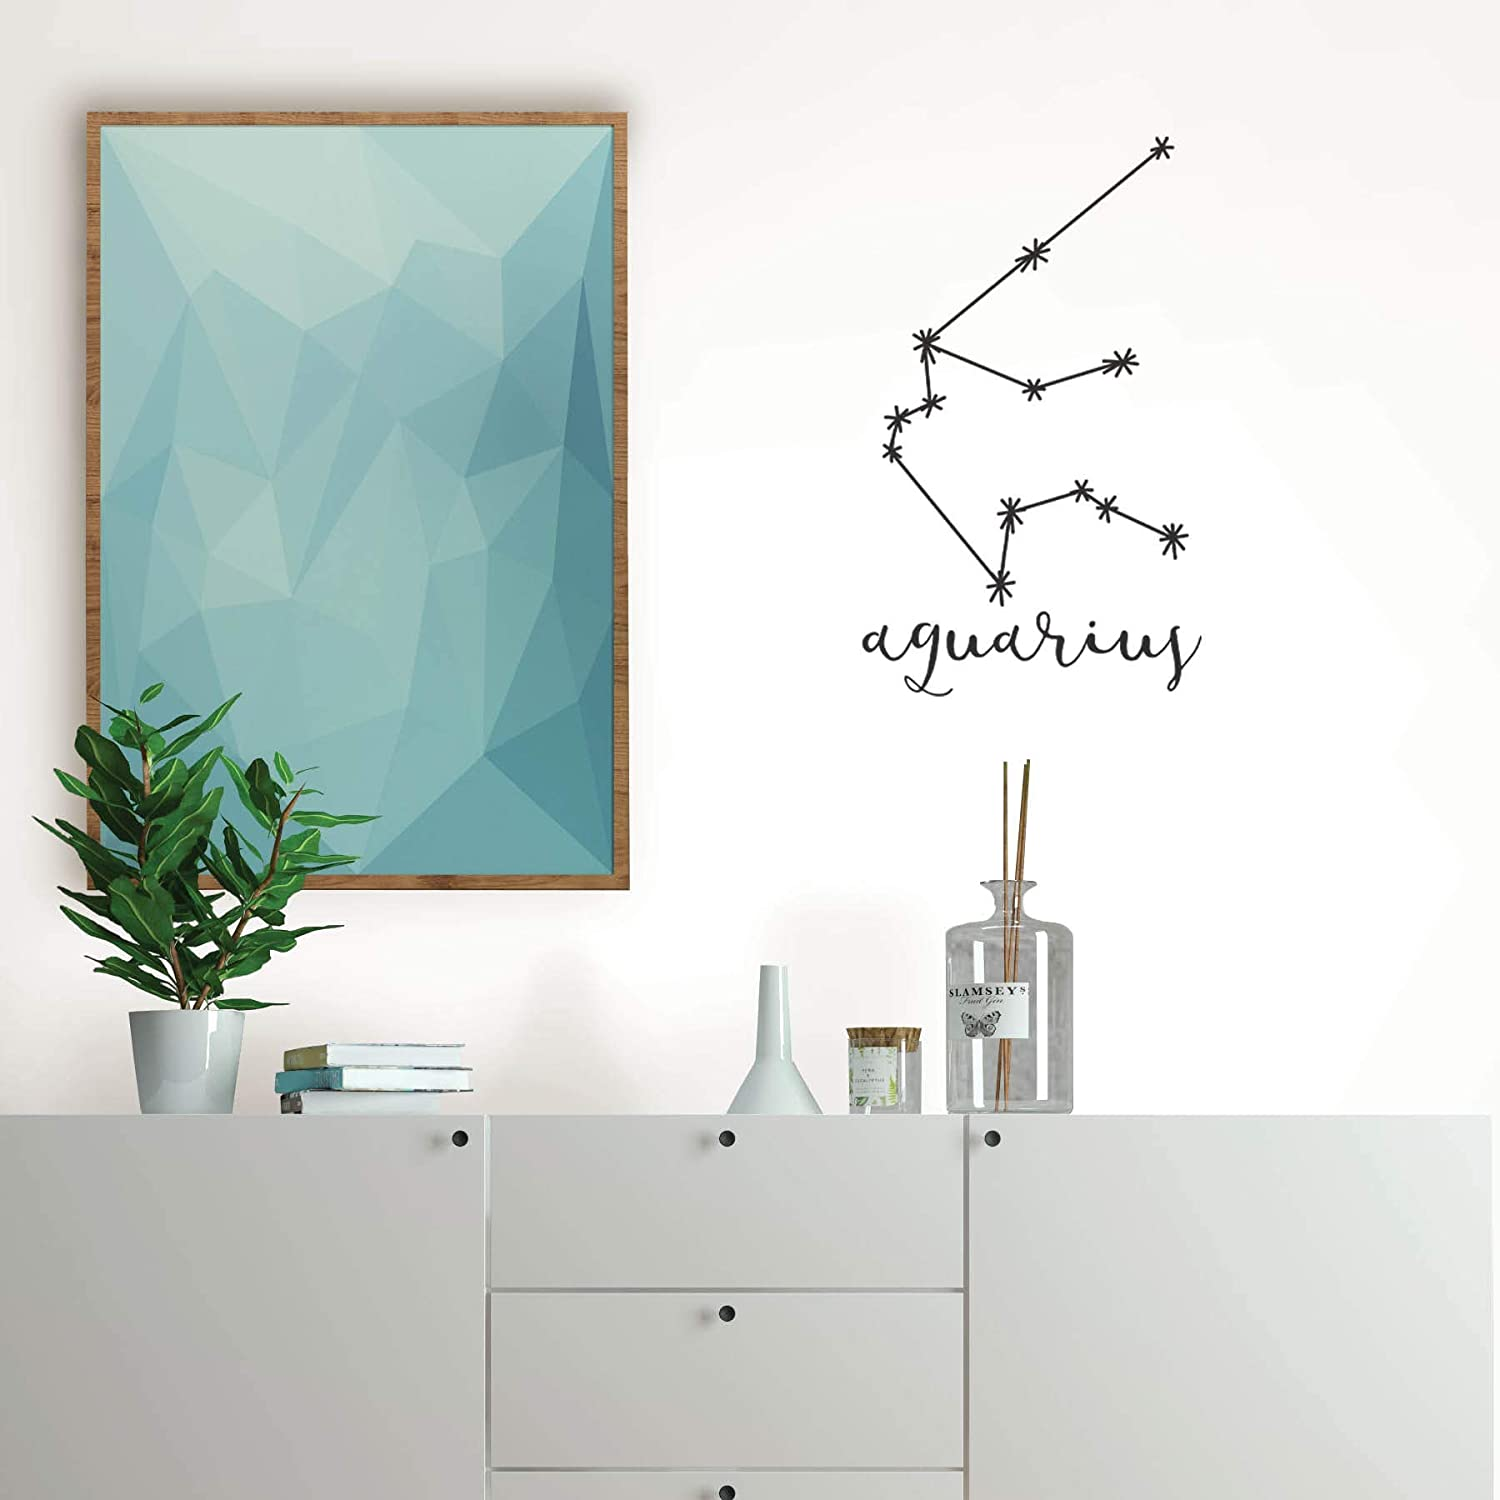 Black Wall Pops DWPK3174 Aquarius Art Kit Wall Decal